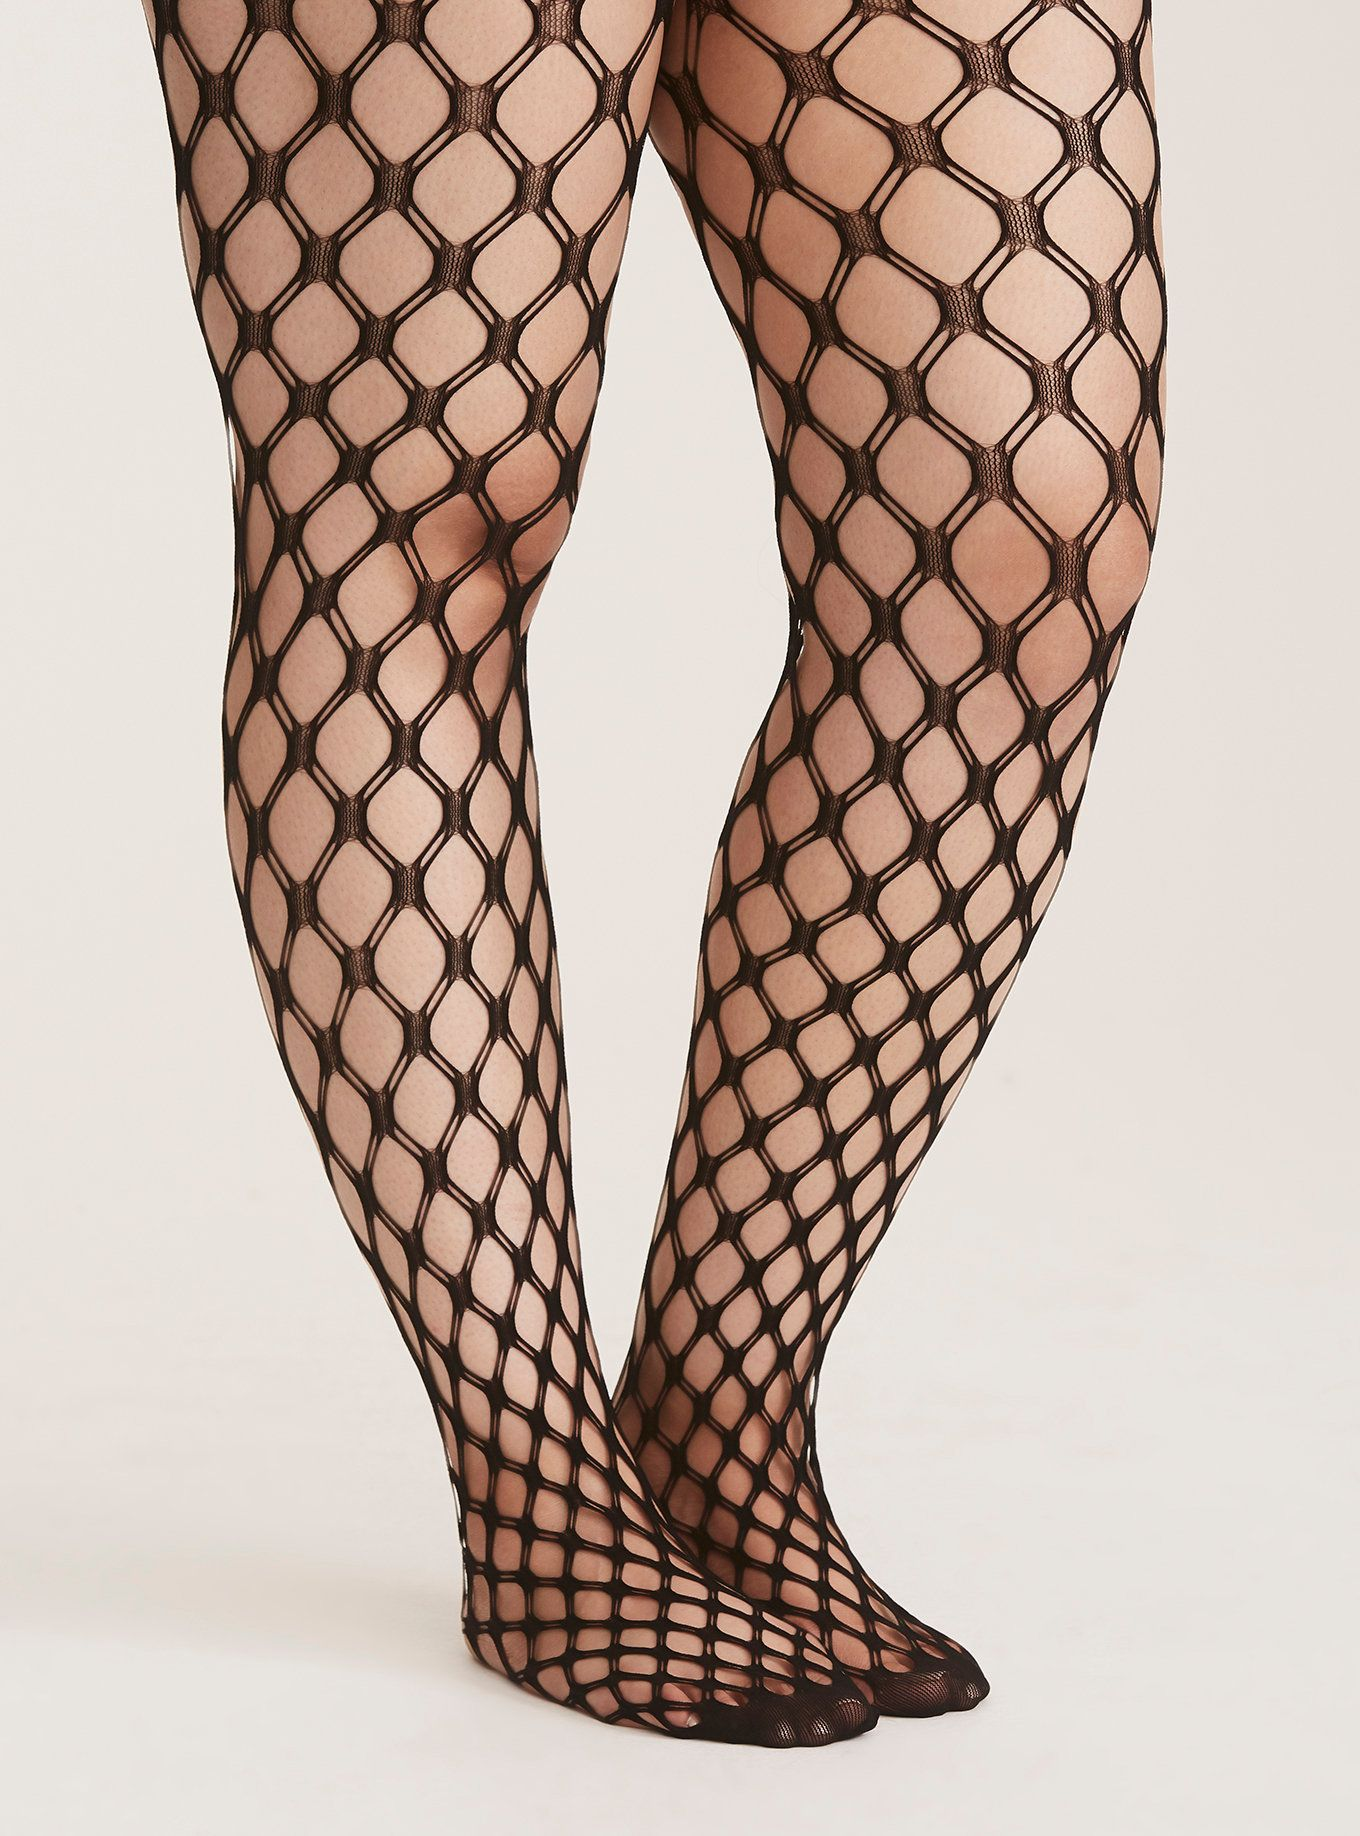 985302f7e70c4 We've put a bold twist on the classic fishnet tights. The thick double  weave on these tights will make anything you wear them with 100x more sexy.  Size ...